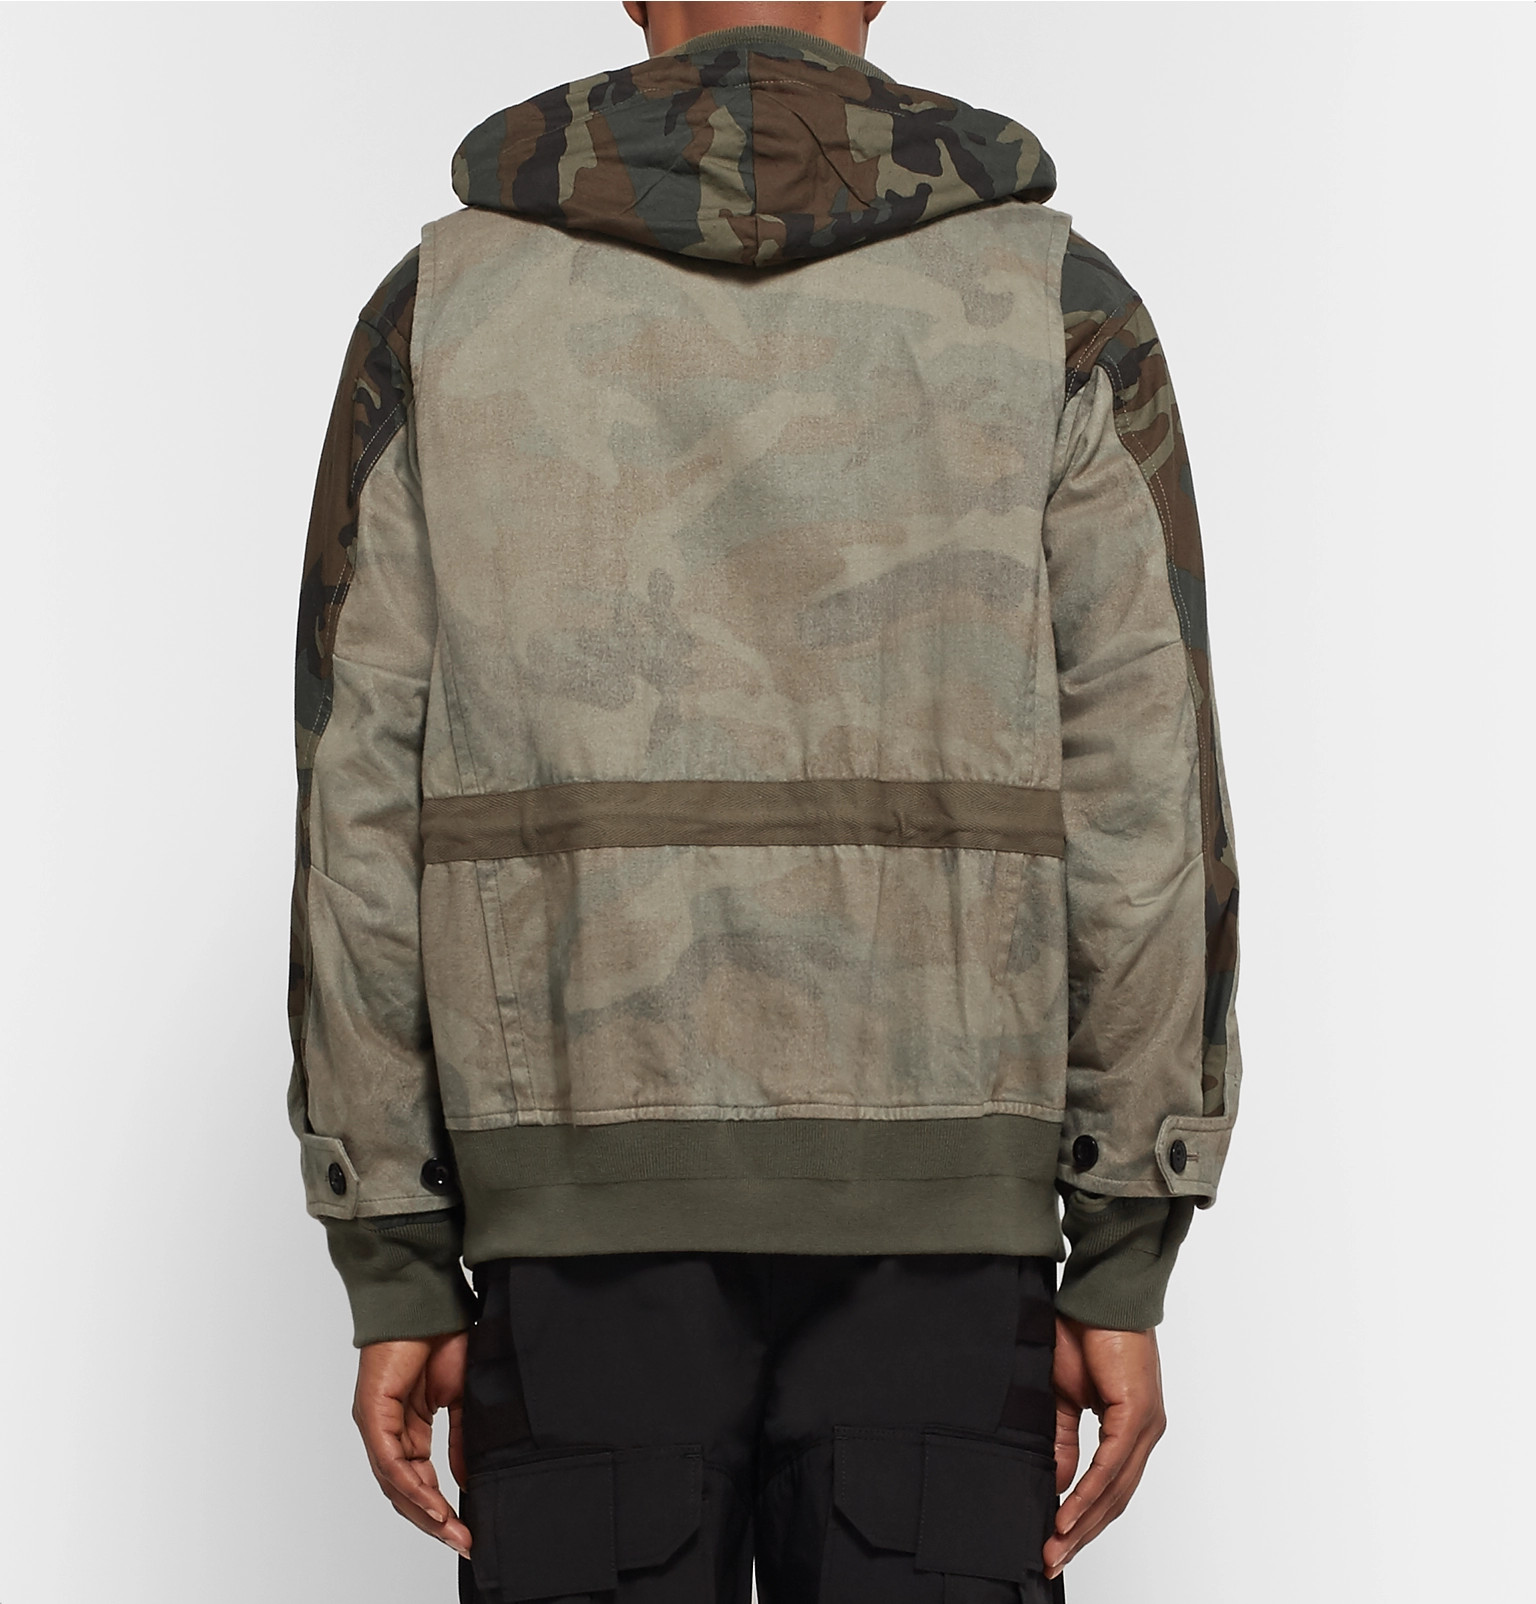 Sacaipanelled Jacket Sacaipanelled Camouflage Camouflage Cotton Print 5x5URwqn